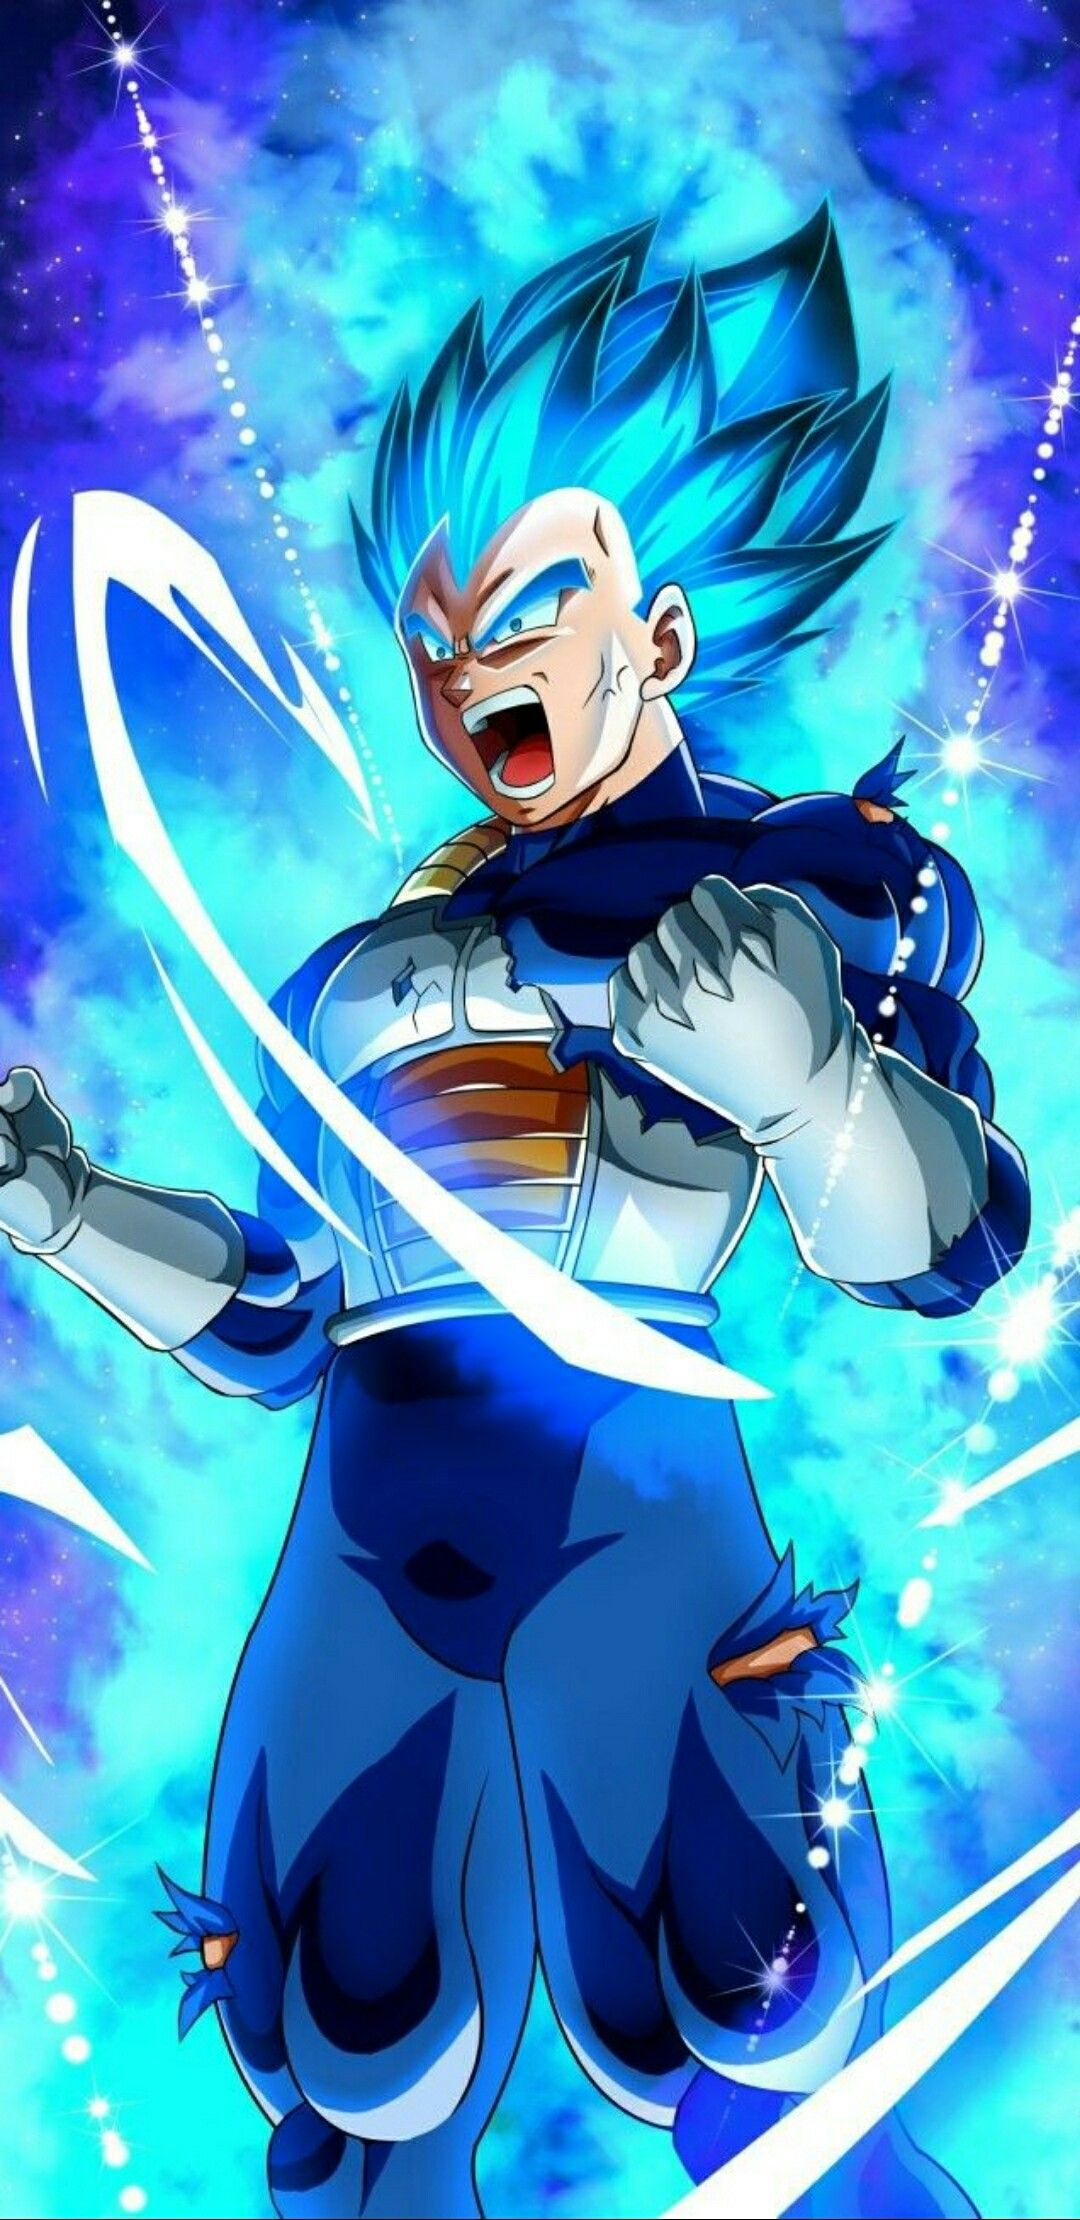 Vegeta God Blue Dragon ball wallpapers, Dragon ball